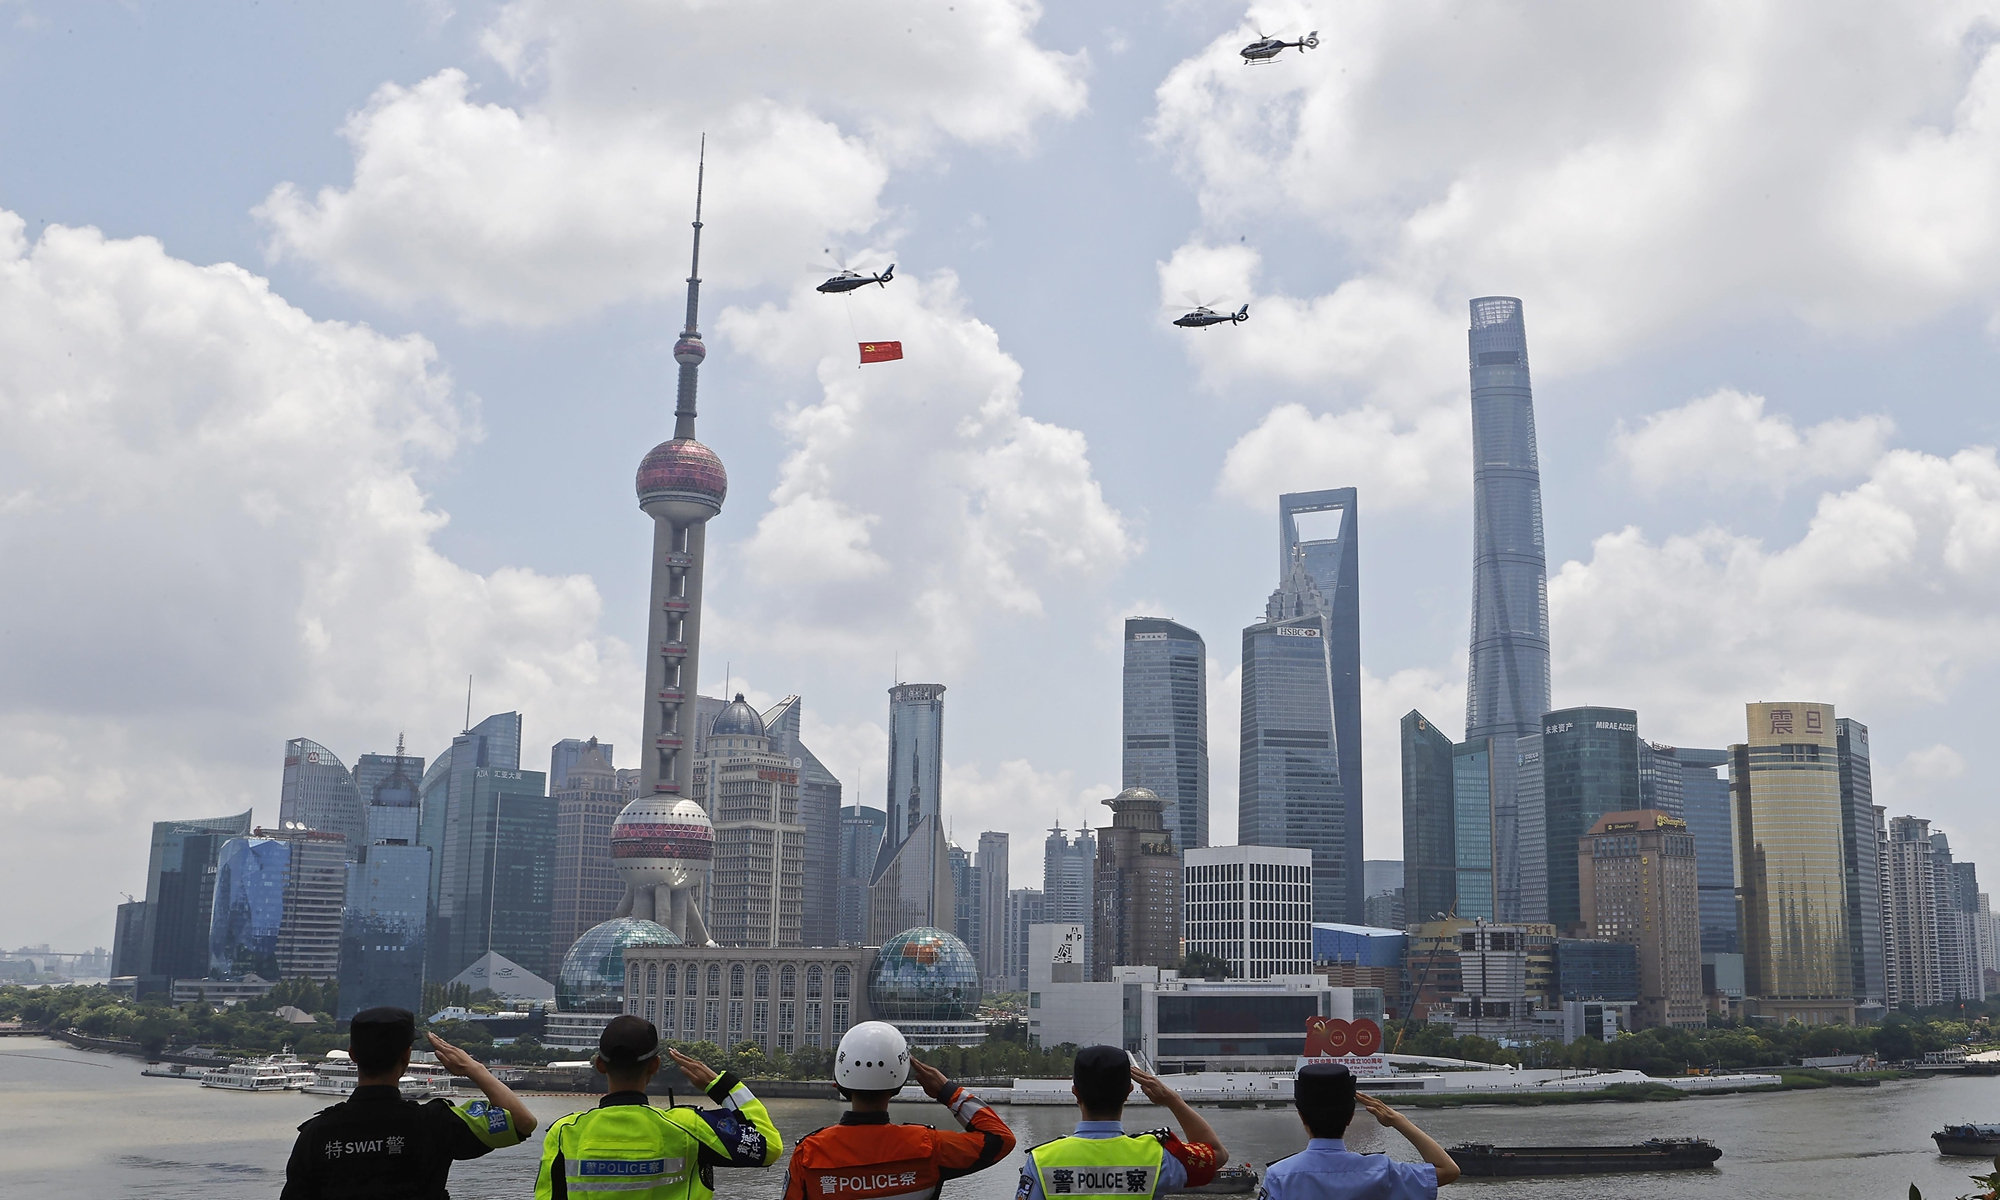 Three police helicopters of the Shanghai Public Security Bureau fly a Party flag over the Huangpu River to celebrate the CPC's centennial in Shanghai on Thursday. Photo: cnsphoto